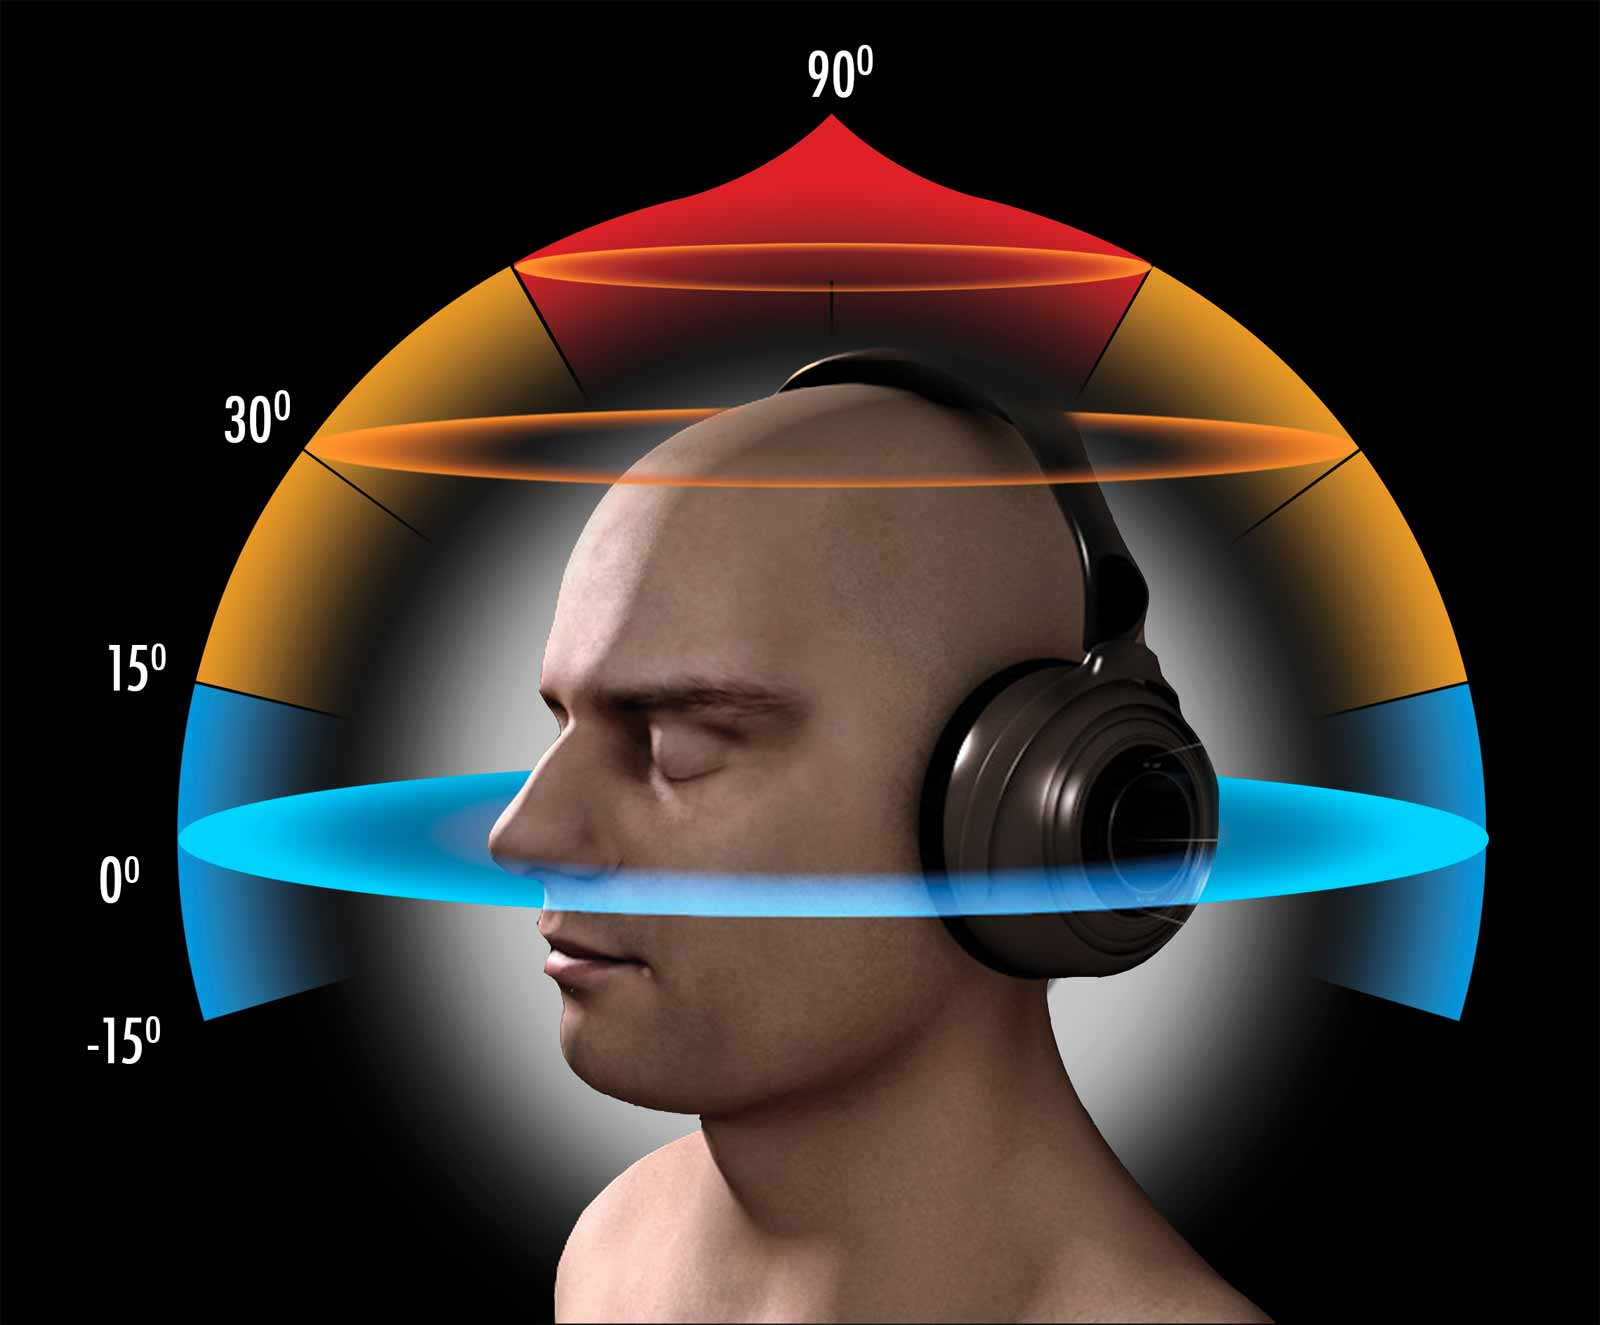 binaural recording for positional audio